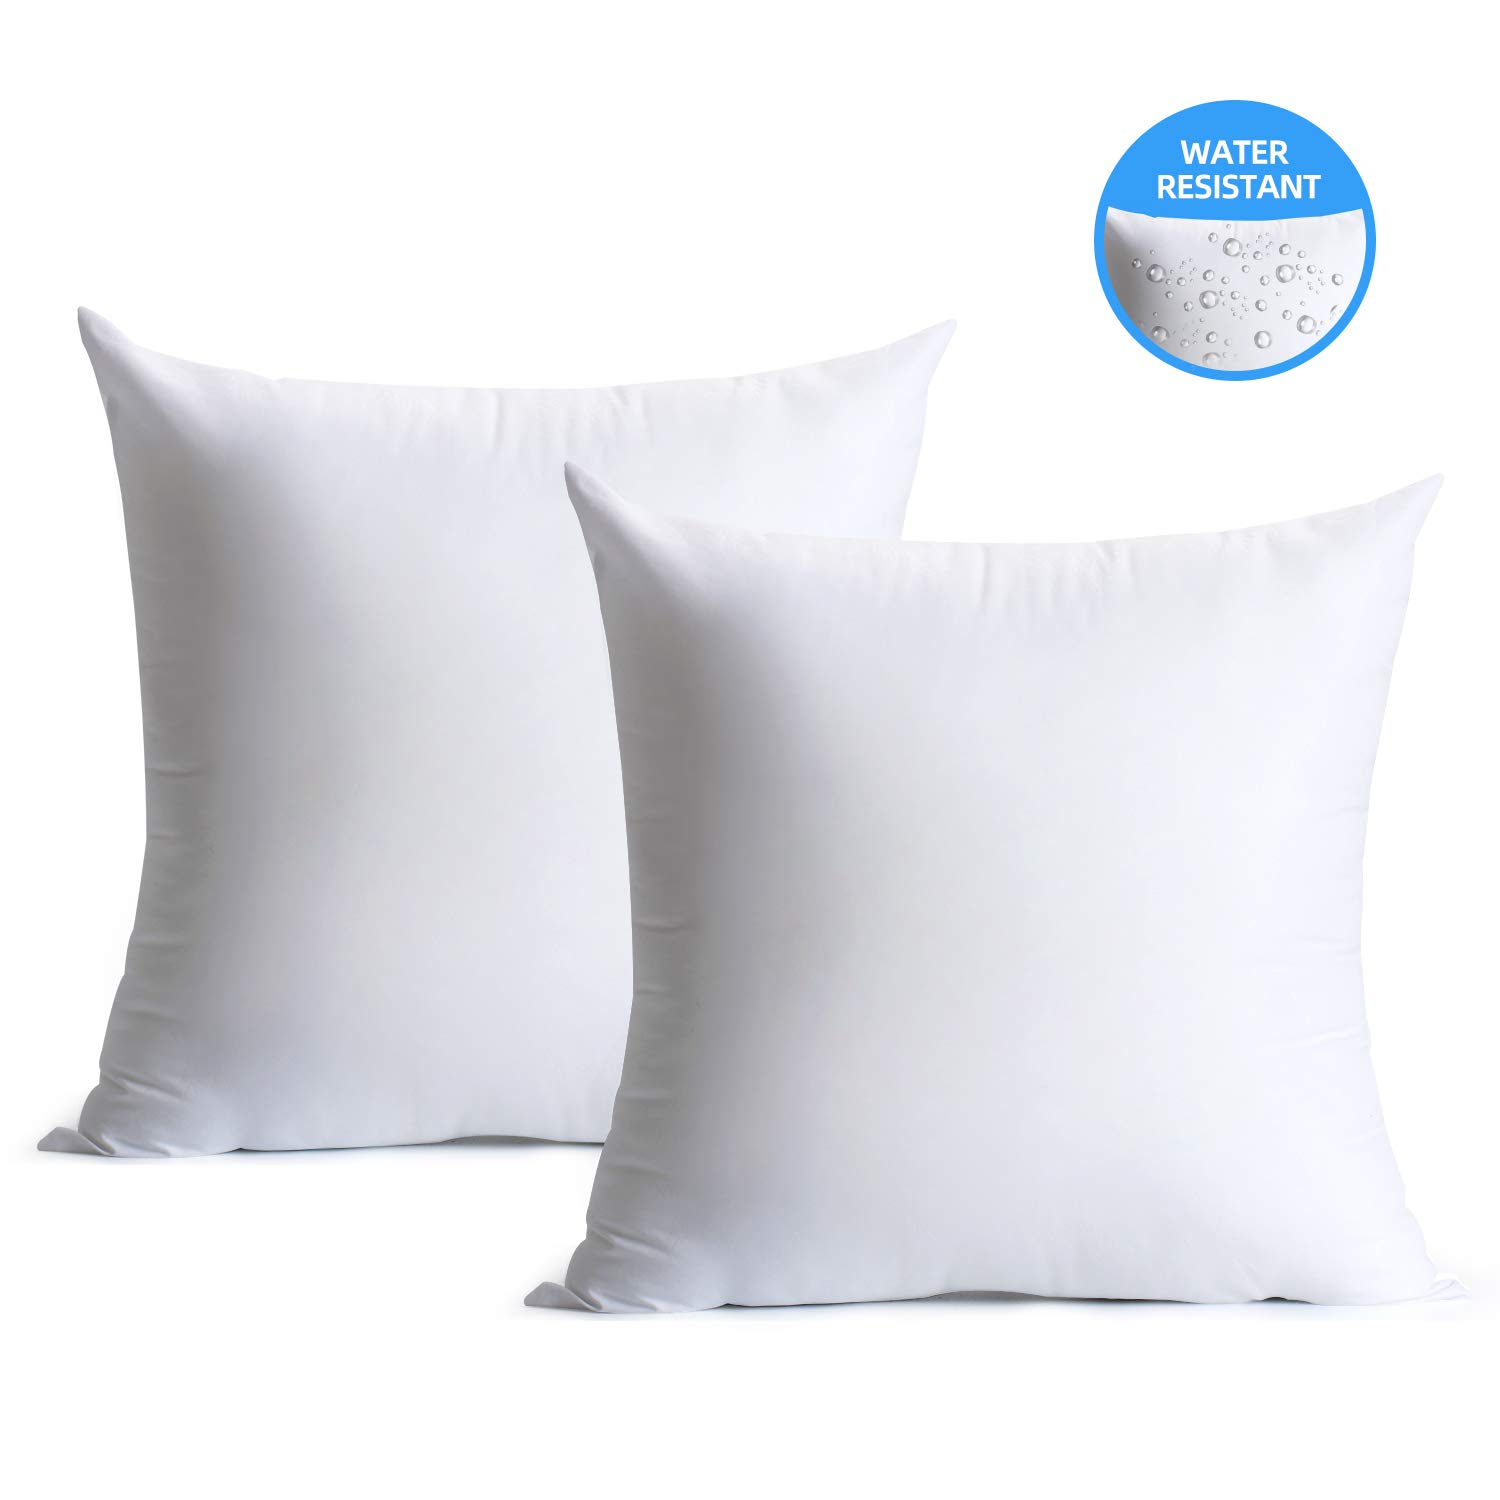 calibrate timing 18 x 18 pillow inserts